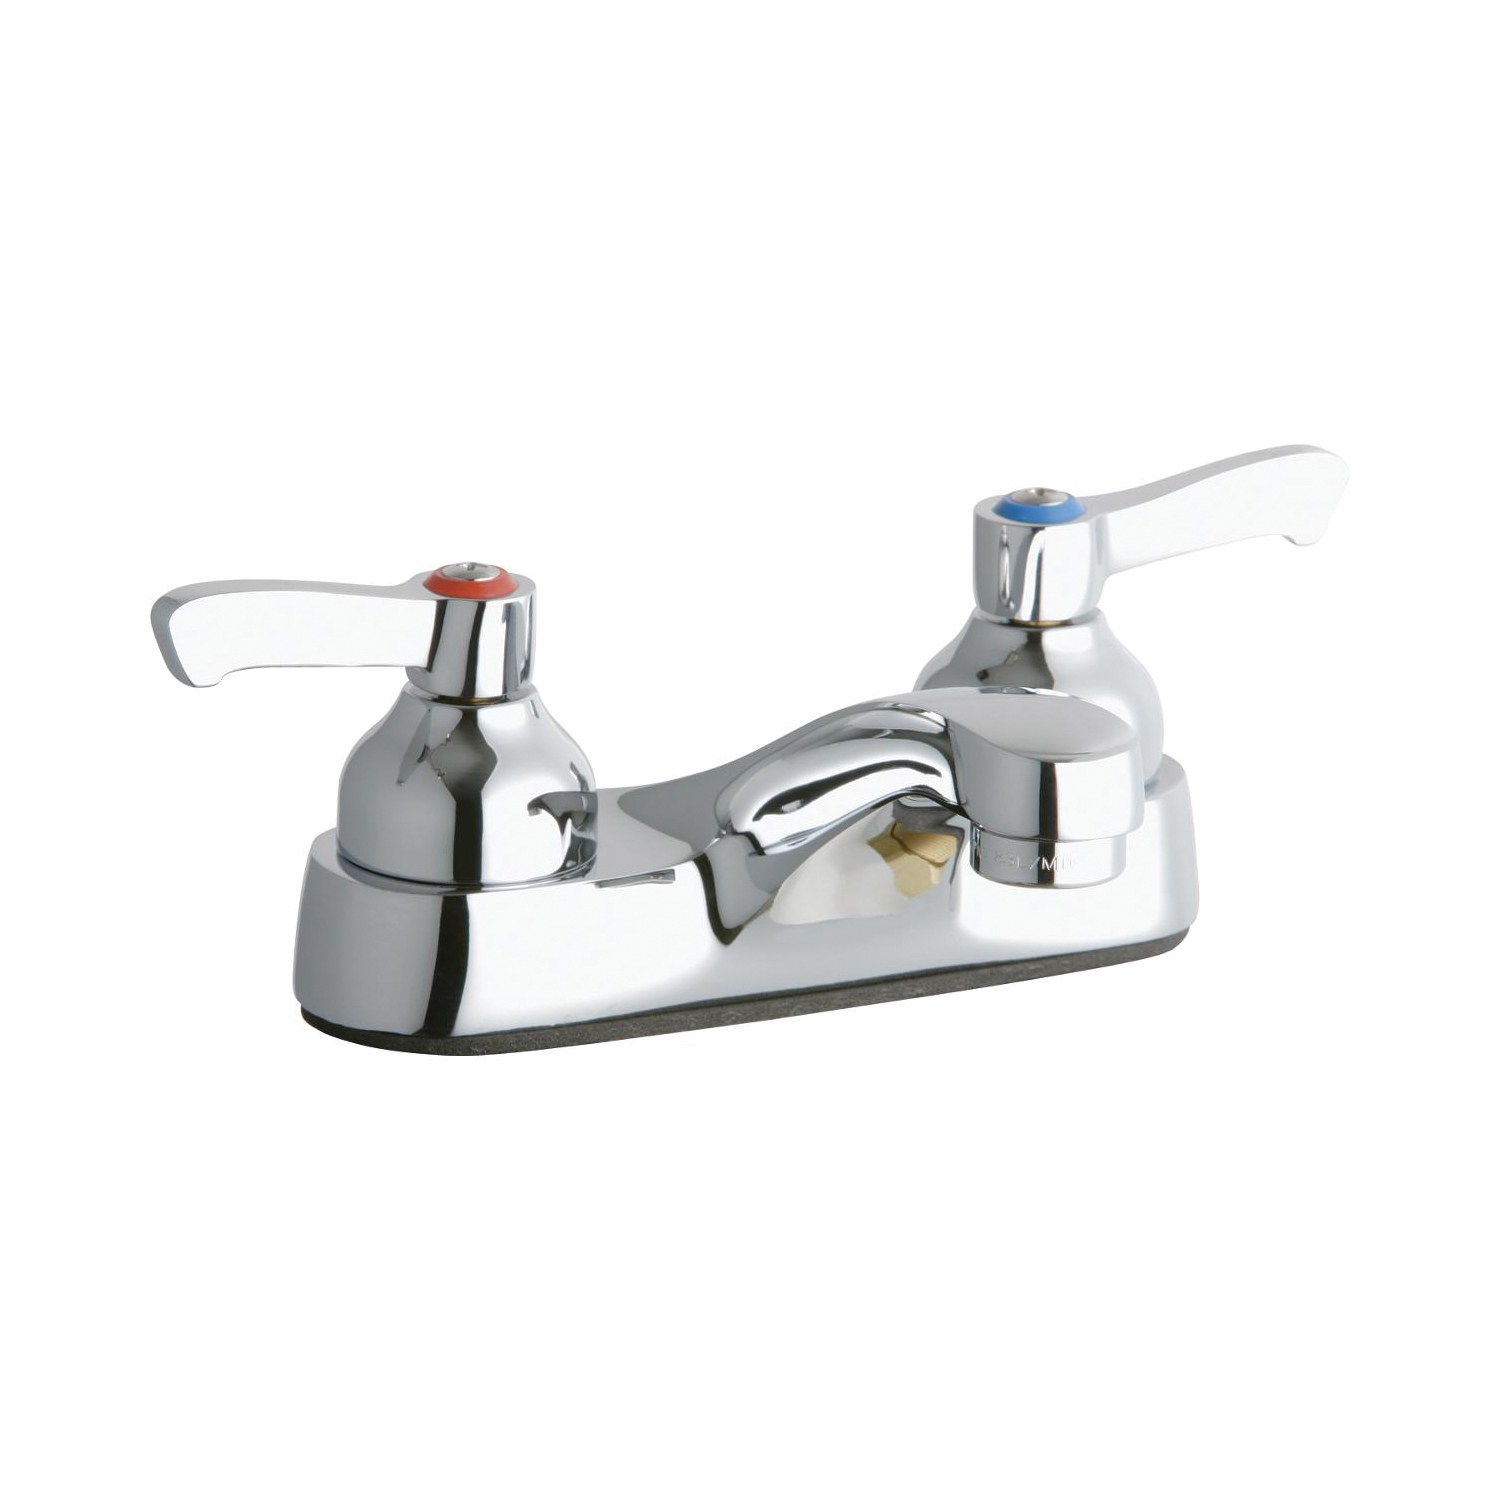 Elkay® LK402L2 Exposed Centerset Bathroom Faucet, Chrome Plated, 2 Handles, 0.5 gpm